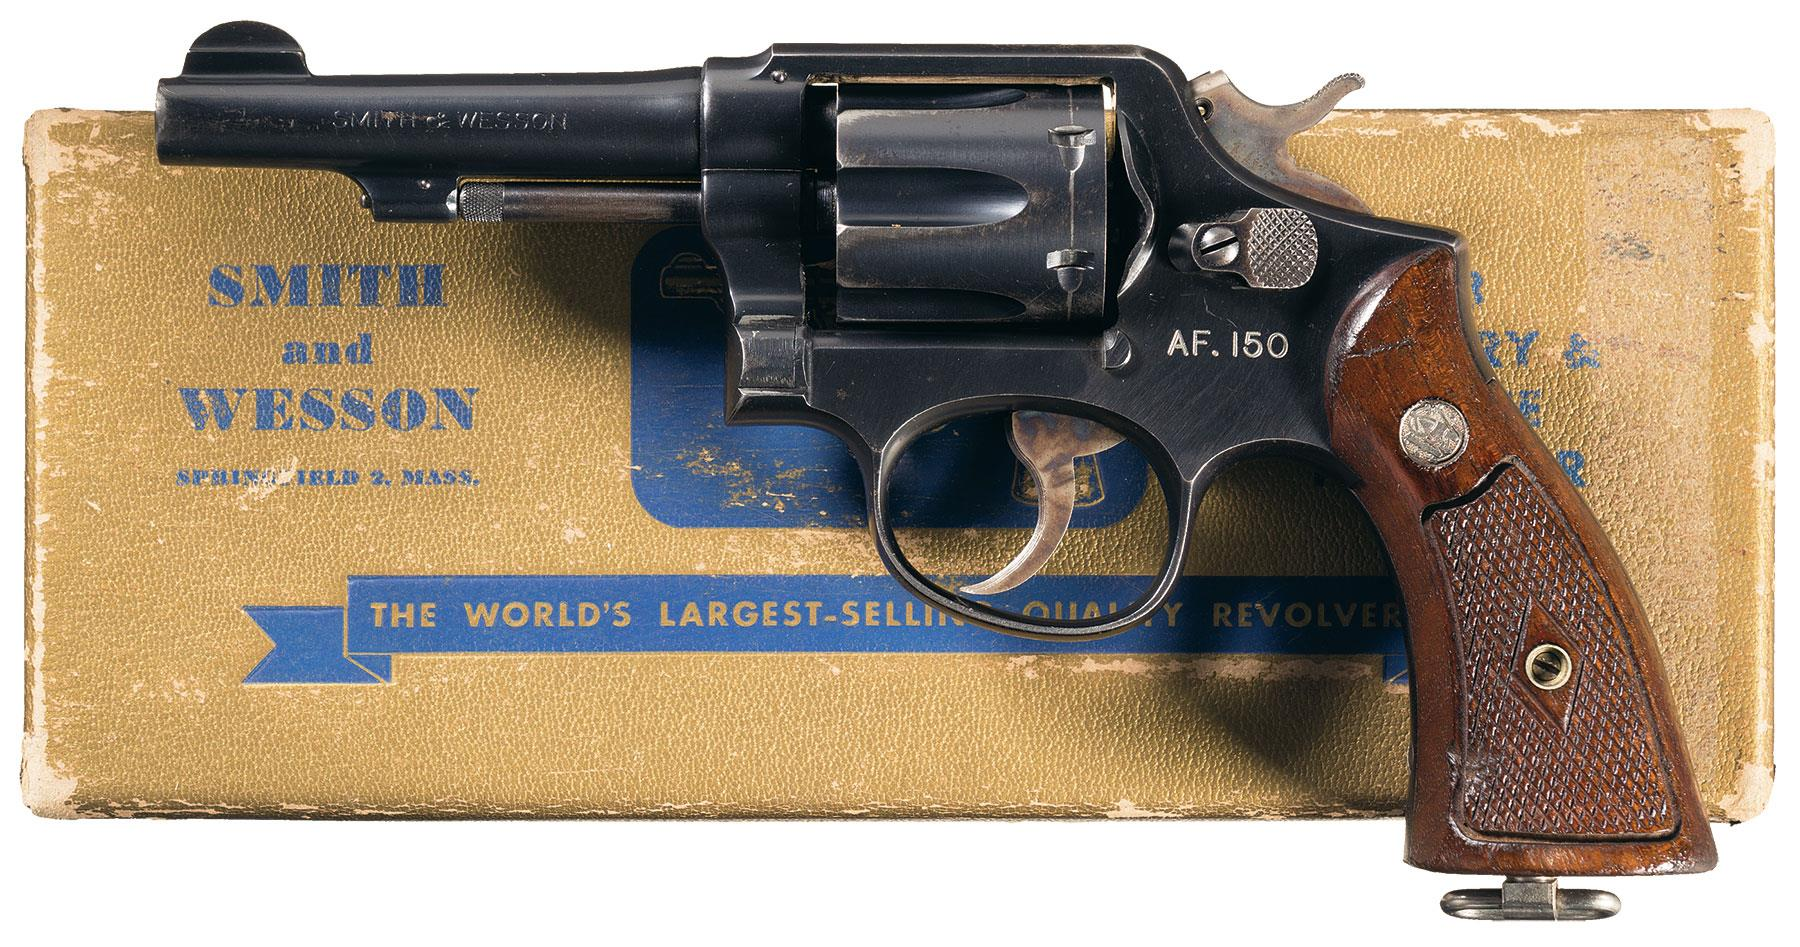 Smith wesson 38 military police revolver 38 s w special revolver firearms auction lot 3271